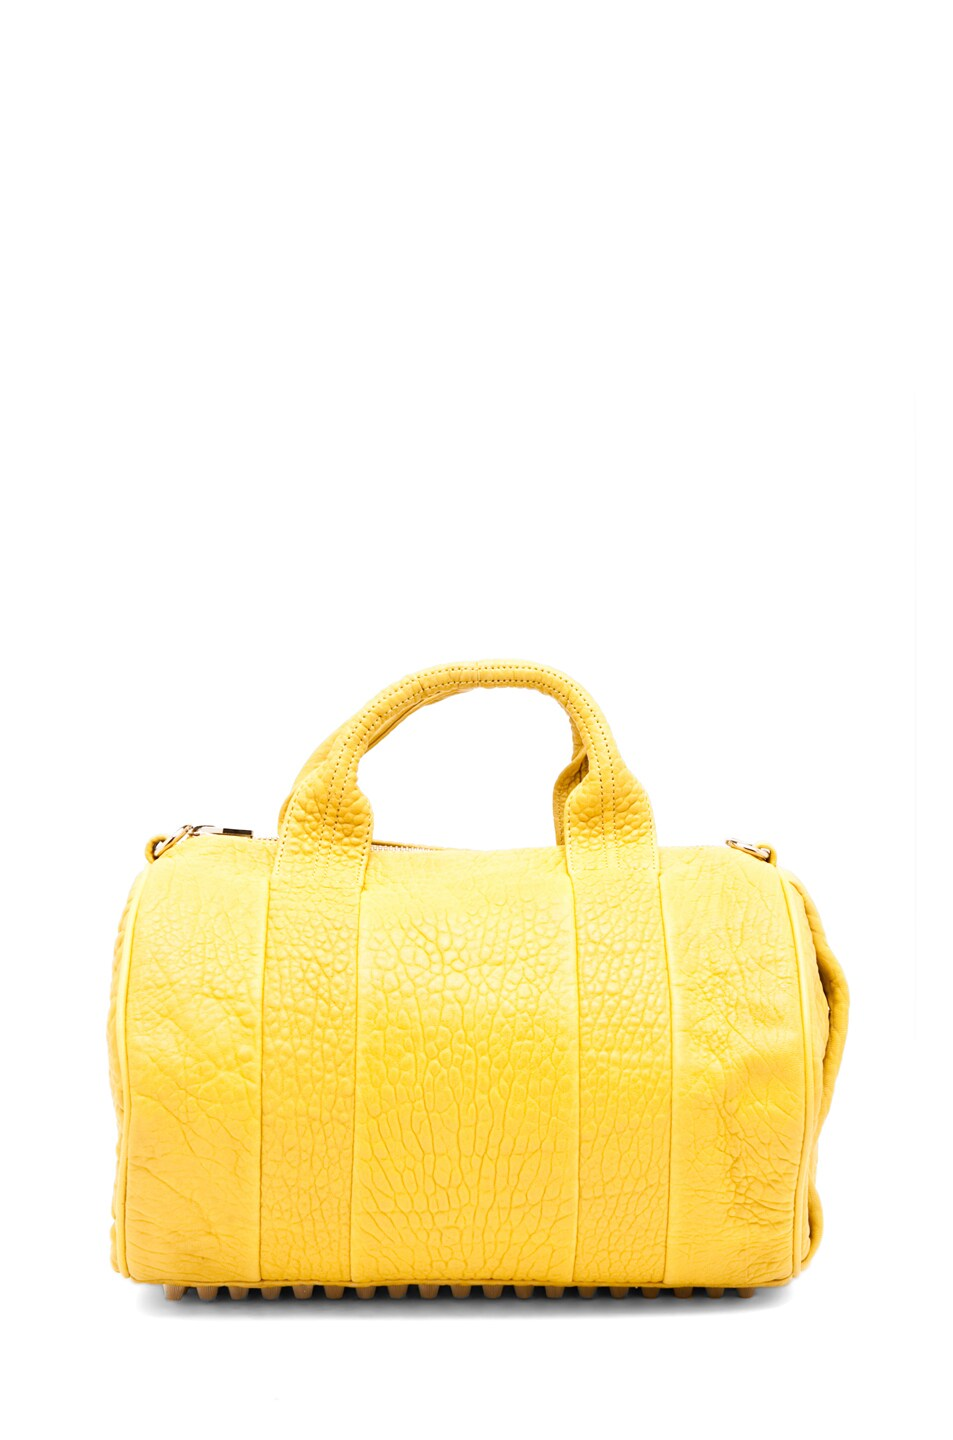 Image 7 of Alexander Wang Rocco Satchel in Citrus